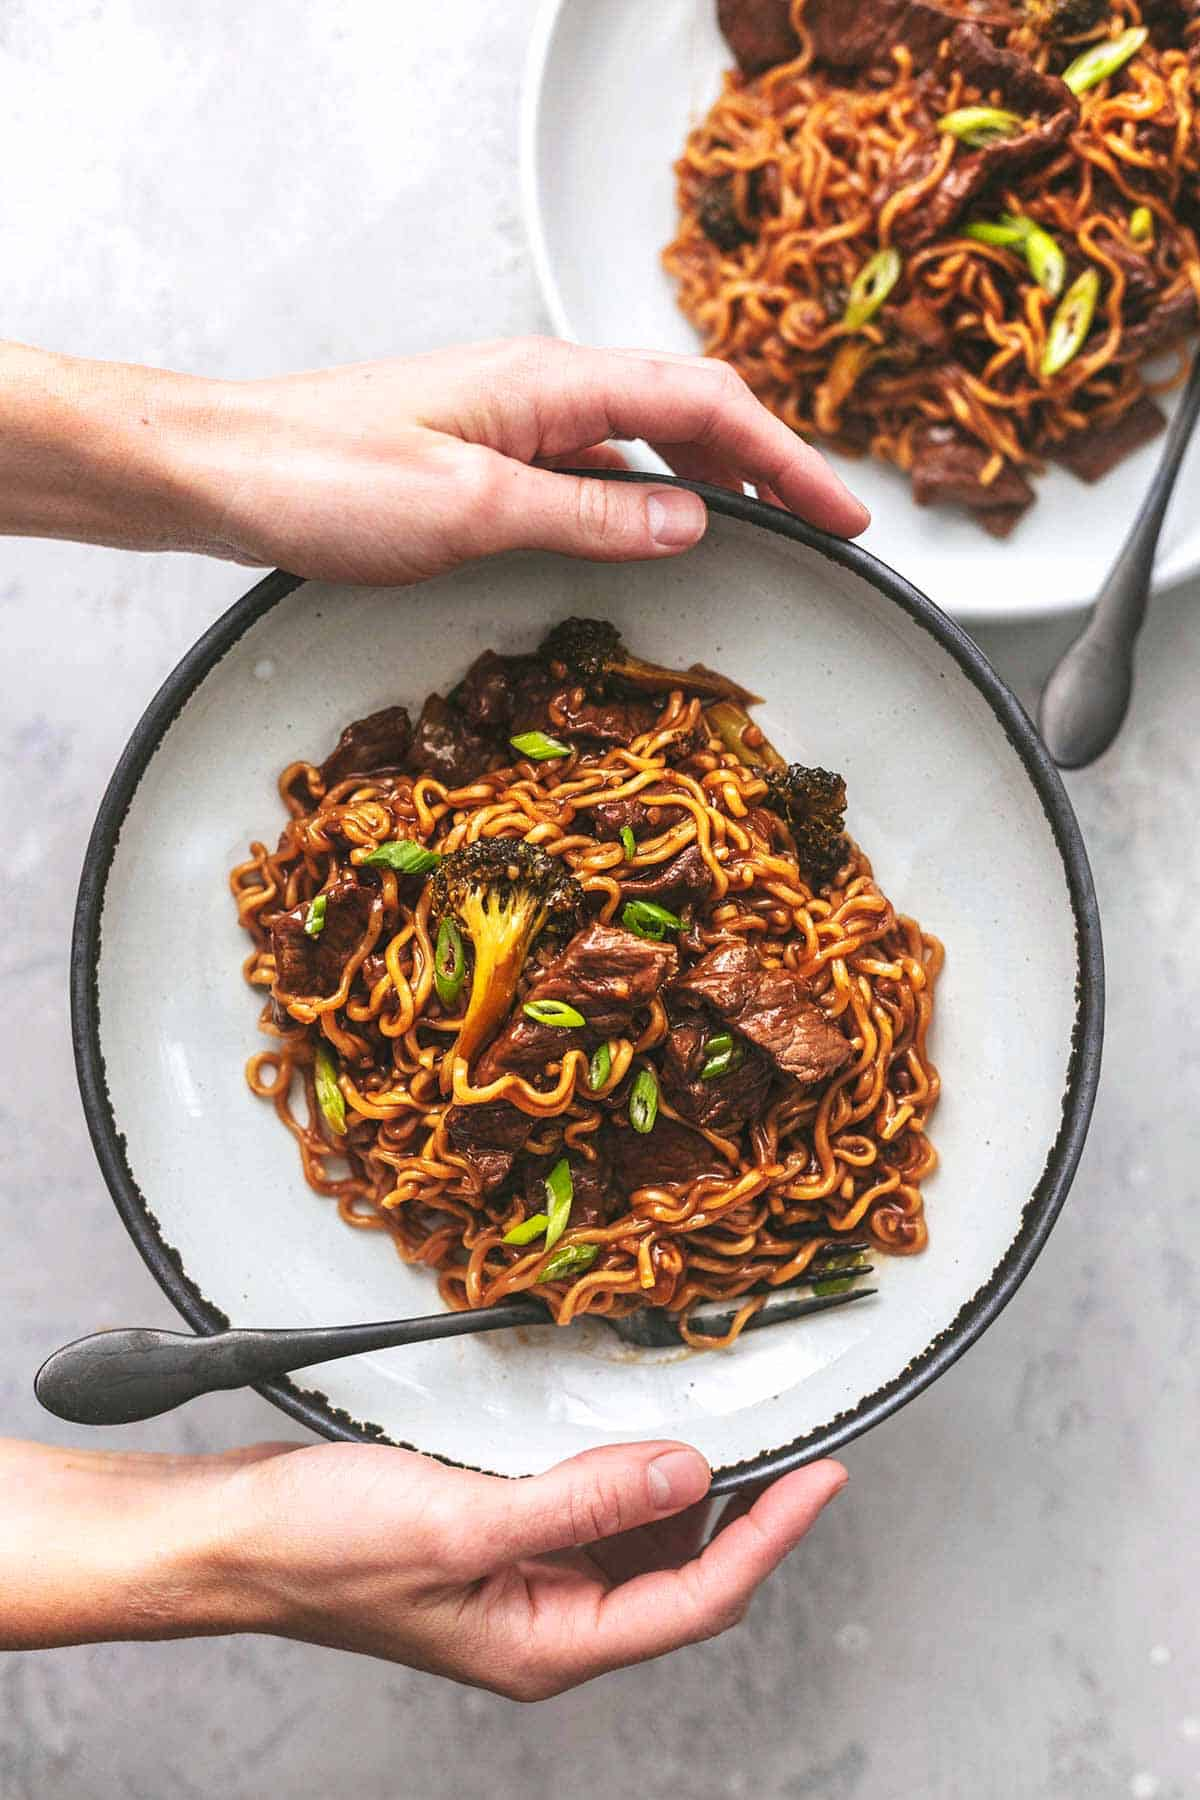 overhead view of hands holding a plate of mongolian beef and noodles